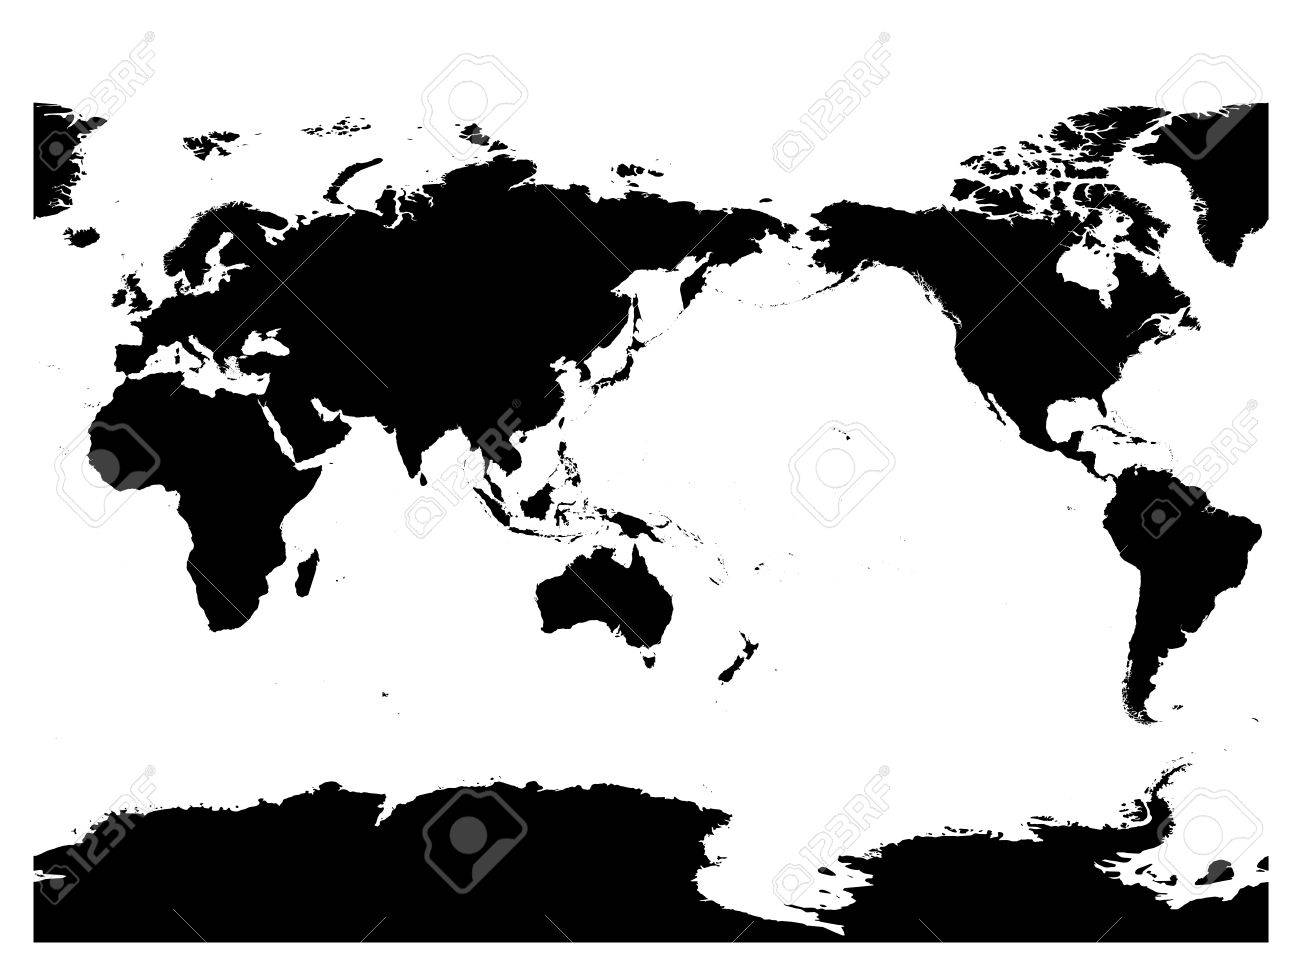 Australia and pacific ocean centered world map high detail black australia and pacific ocean centered world map high detail black silhouette on white background gumiabroncs Image collections